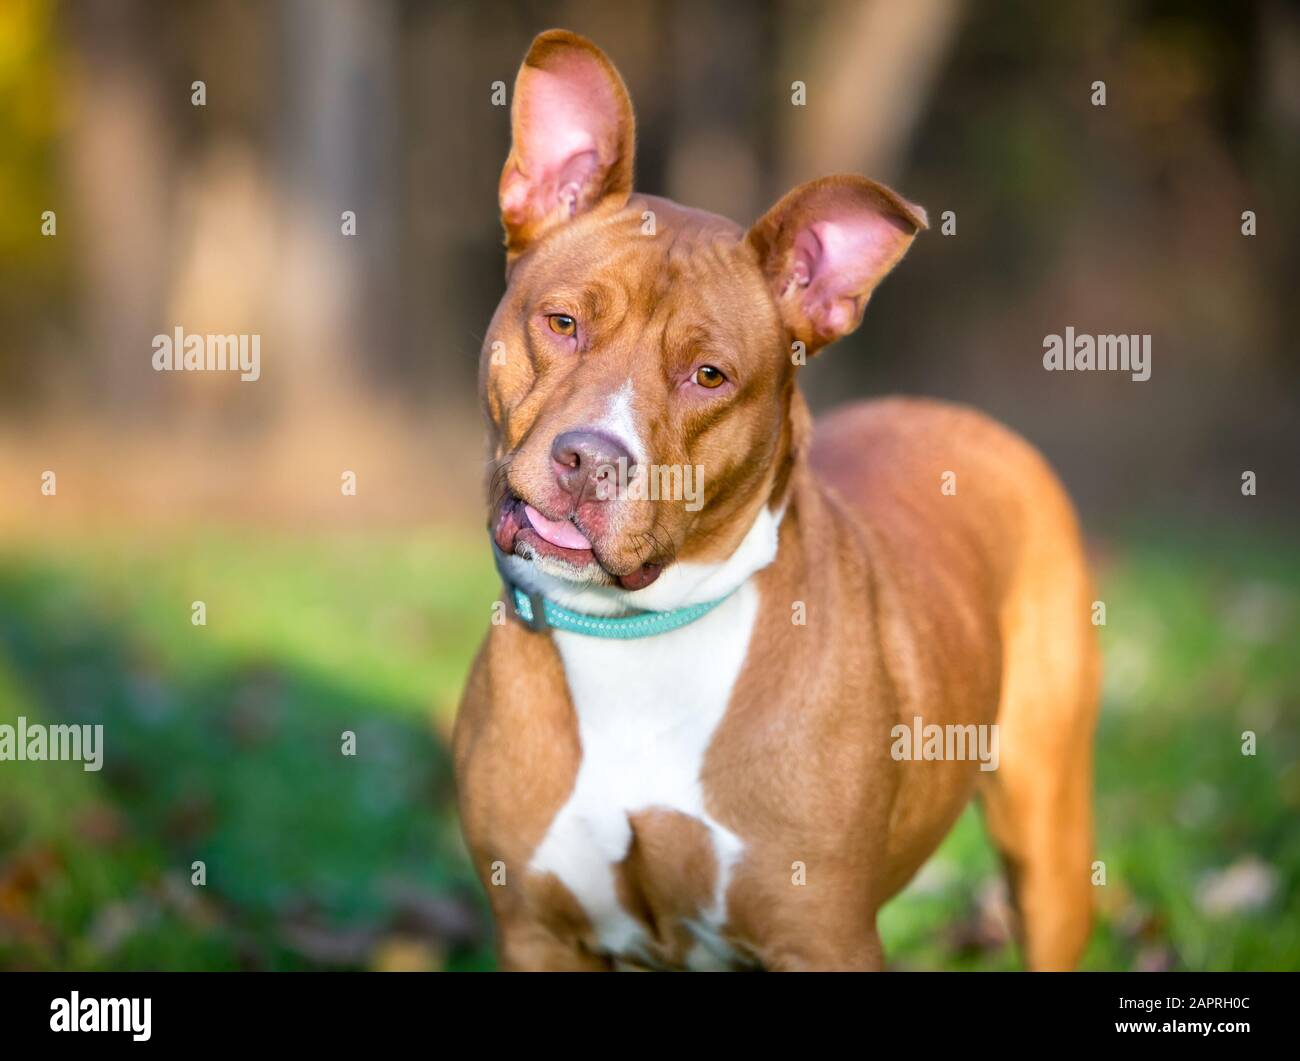 A Red And White Pit Bull Terrier Mixed Breed Dog With Large Ears Listening With A Head Tilt And A Goofy Expression Stock Photo Alamy